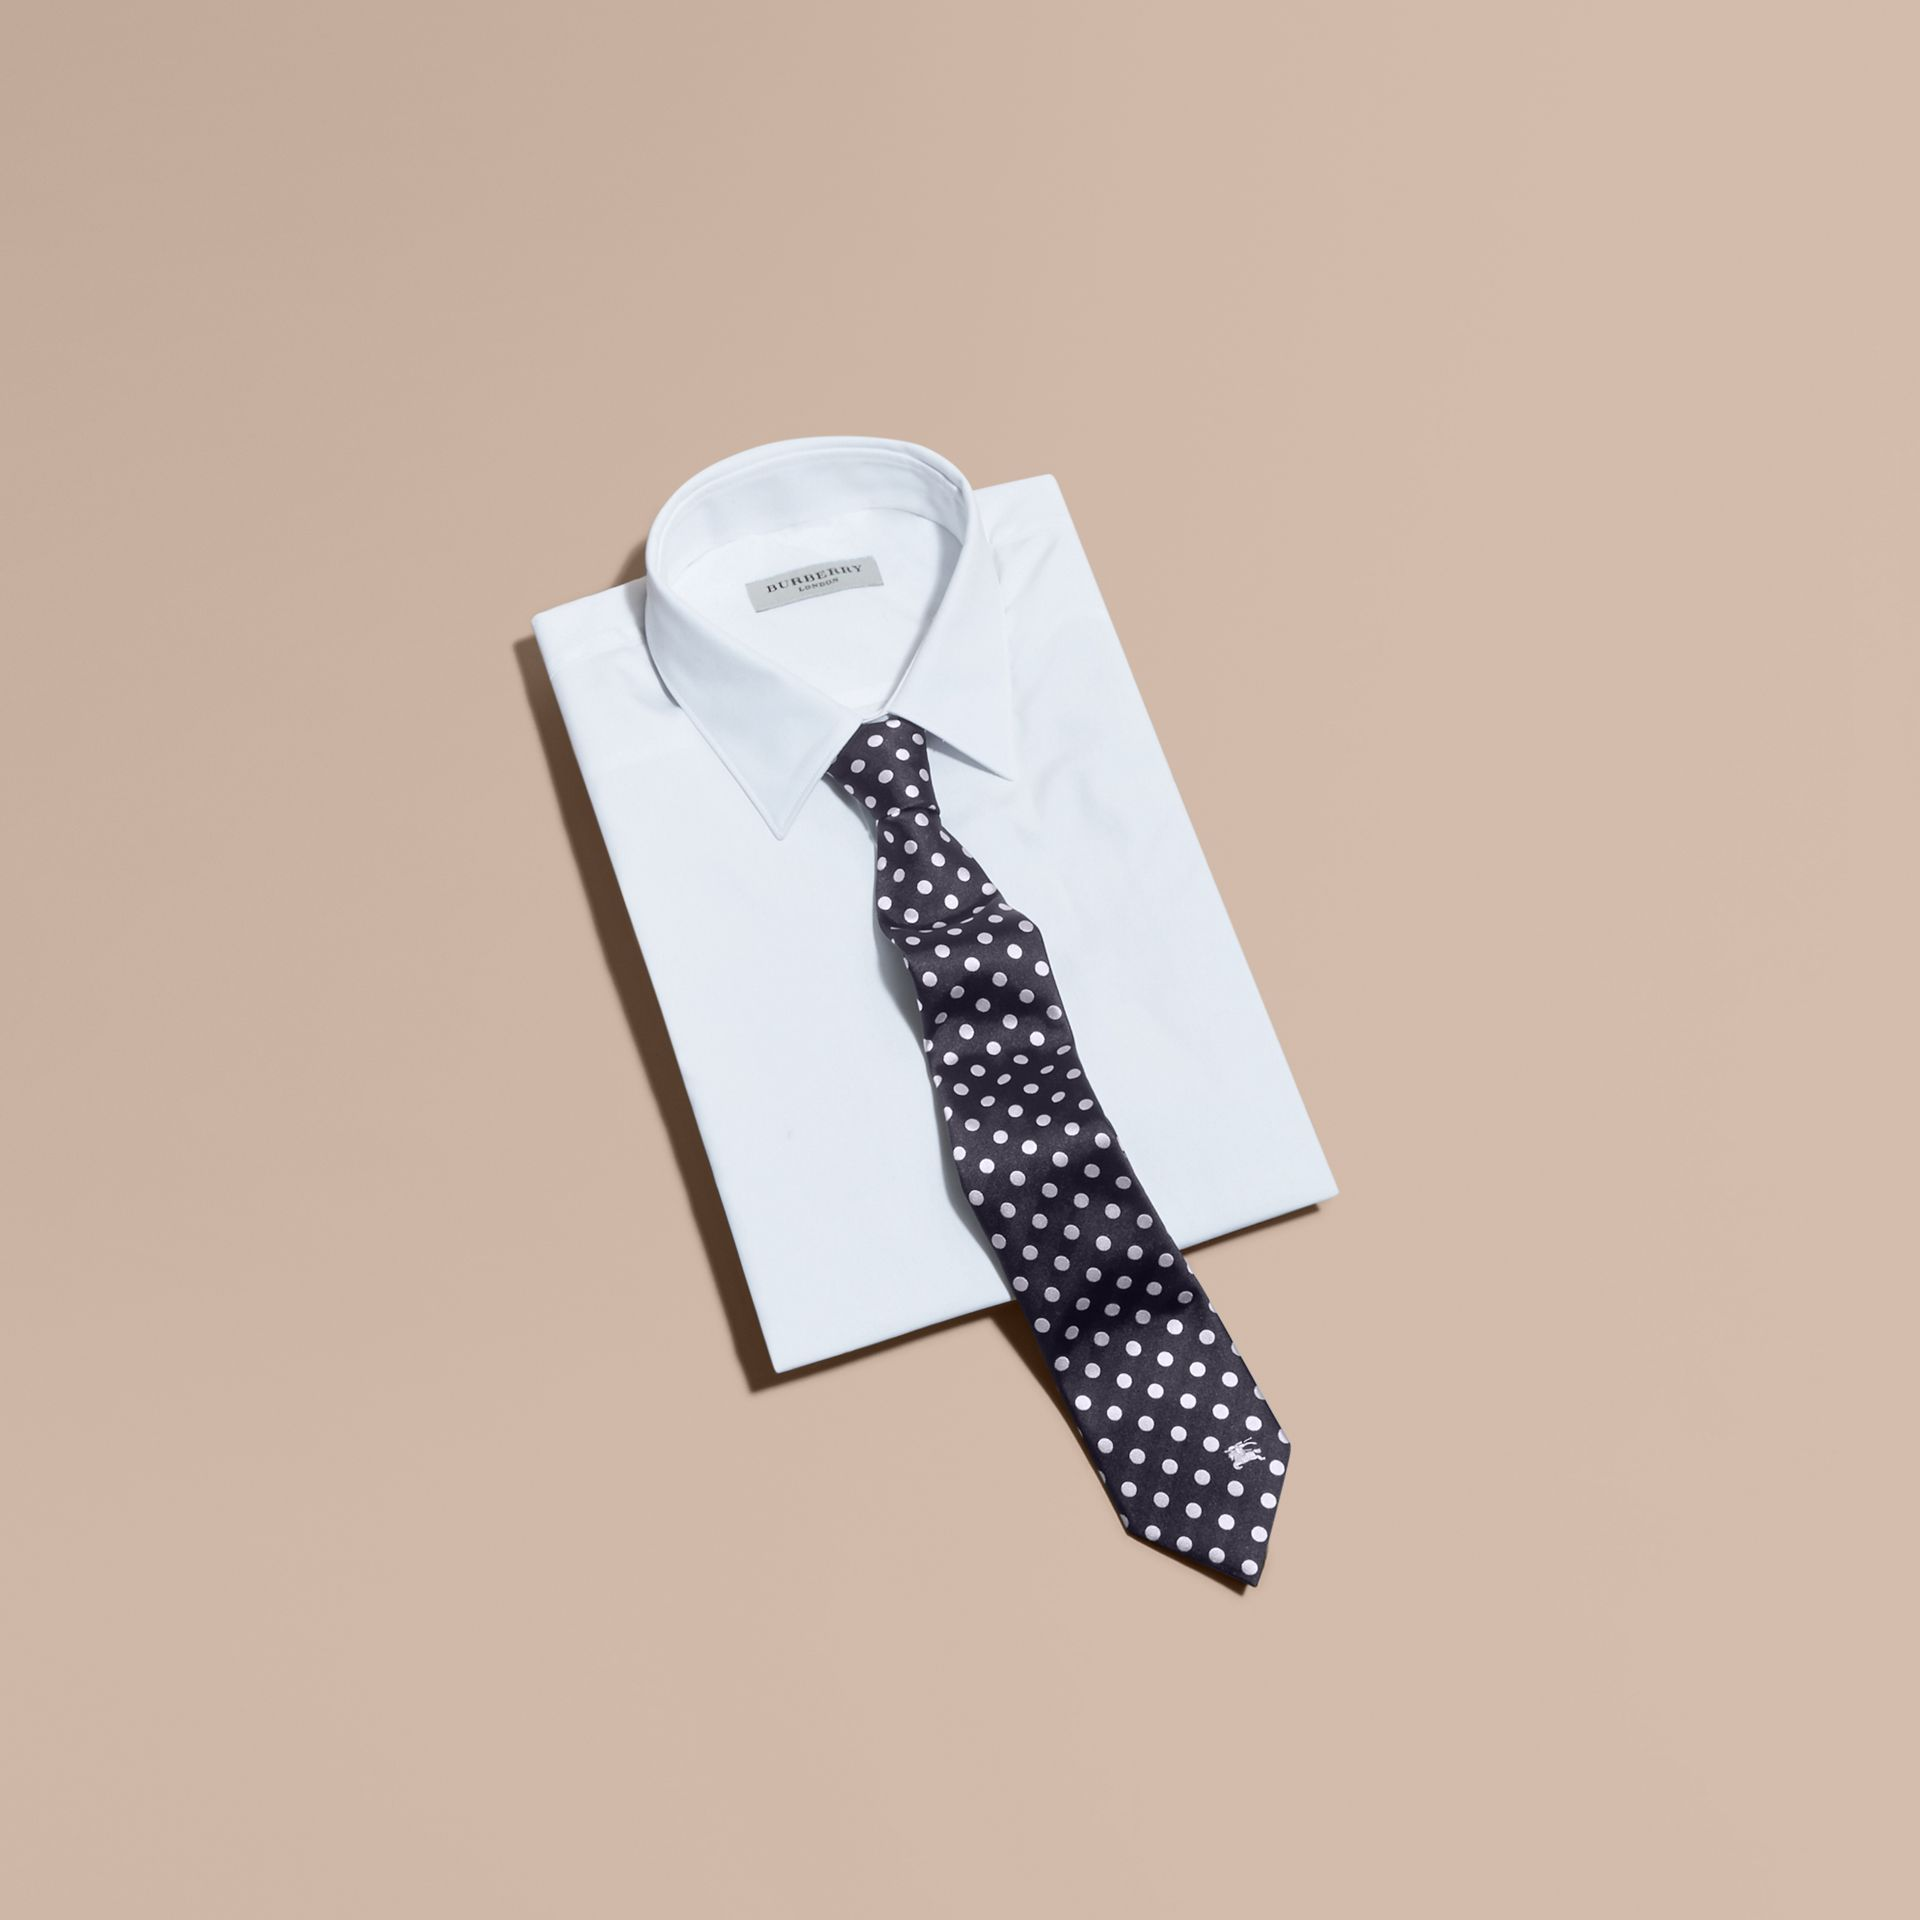 Modern Cut Polka-dot Silk Jacquard Tie in Dark Navy - Men | Burberry - gallery image 4